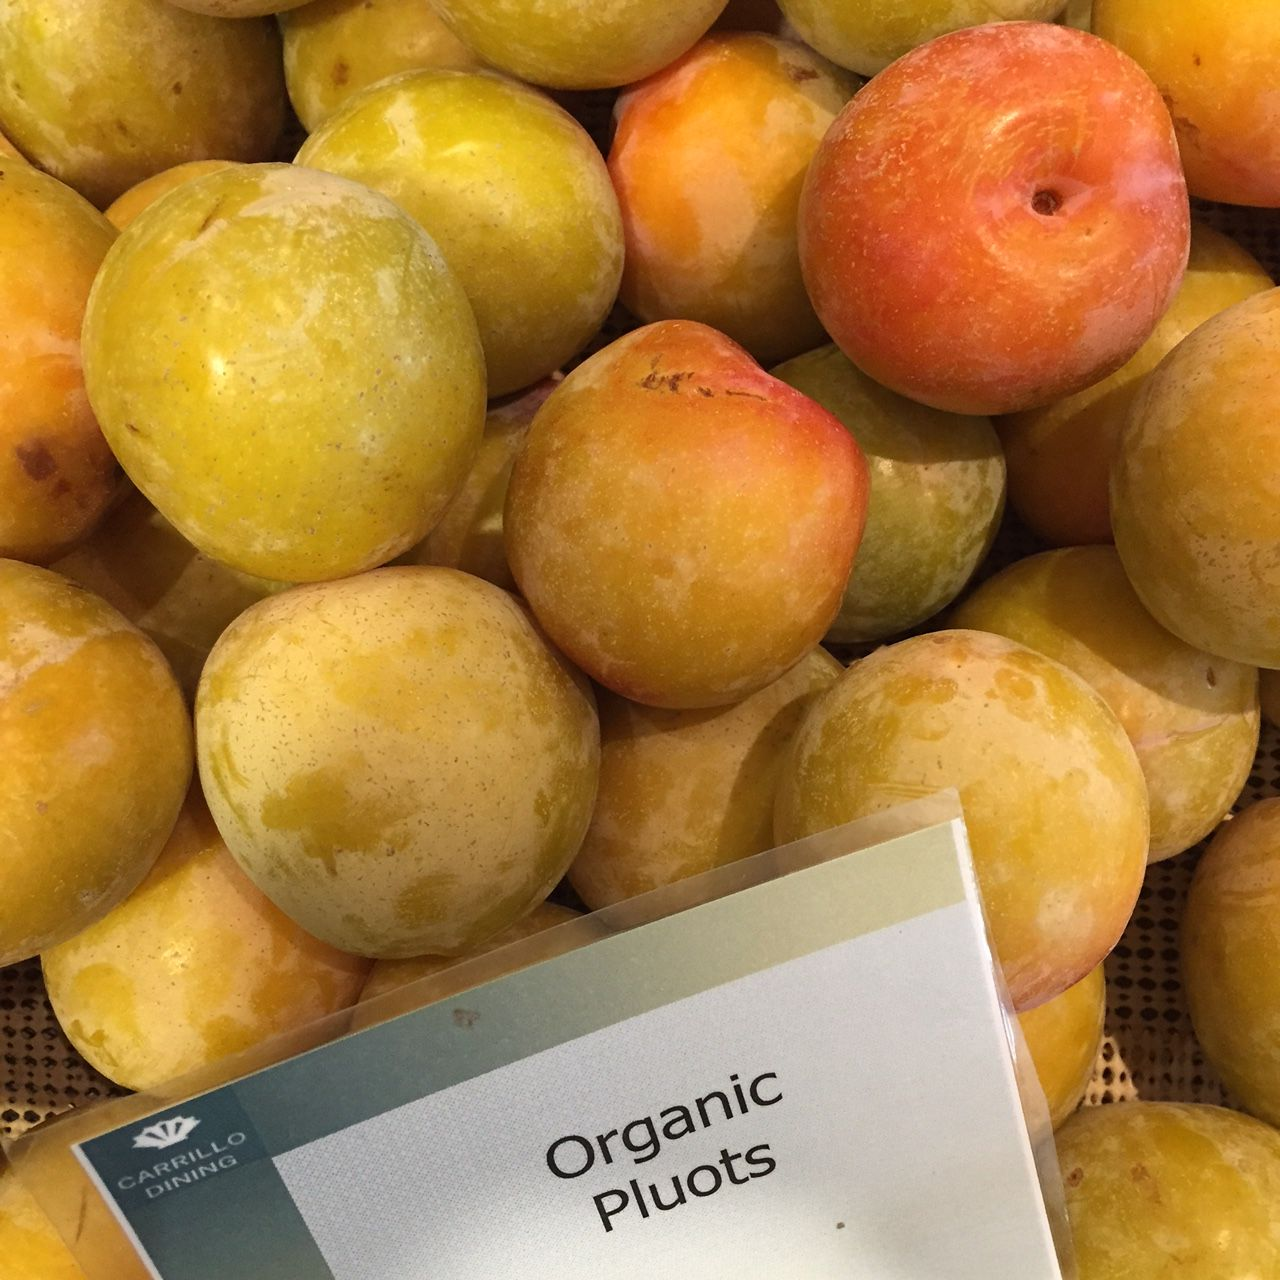 Seasonal organic fruit is a staple at UCSB. #coolschool #climate